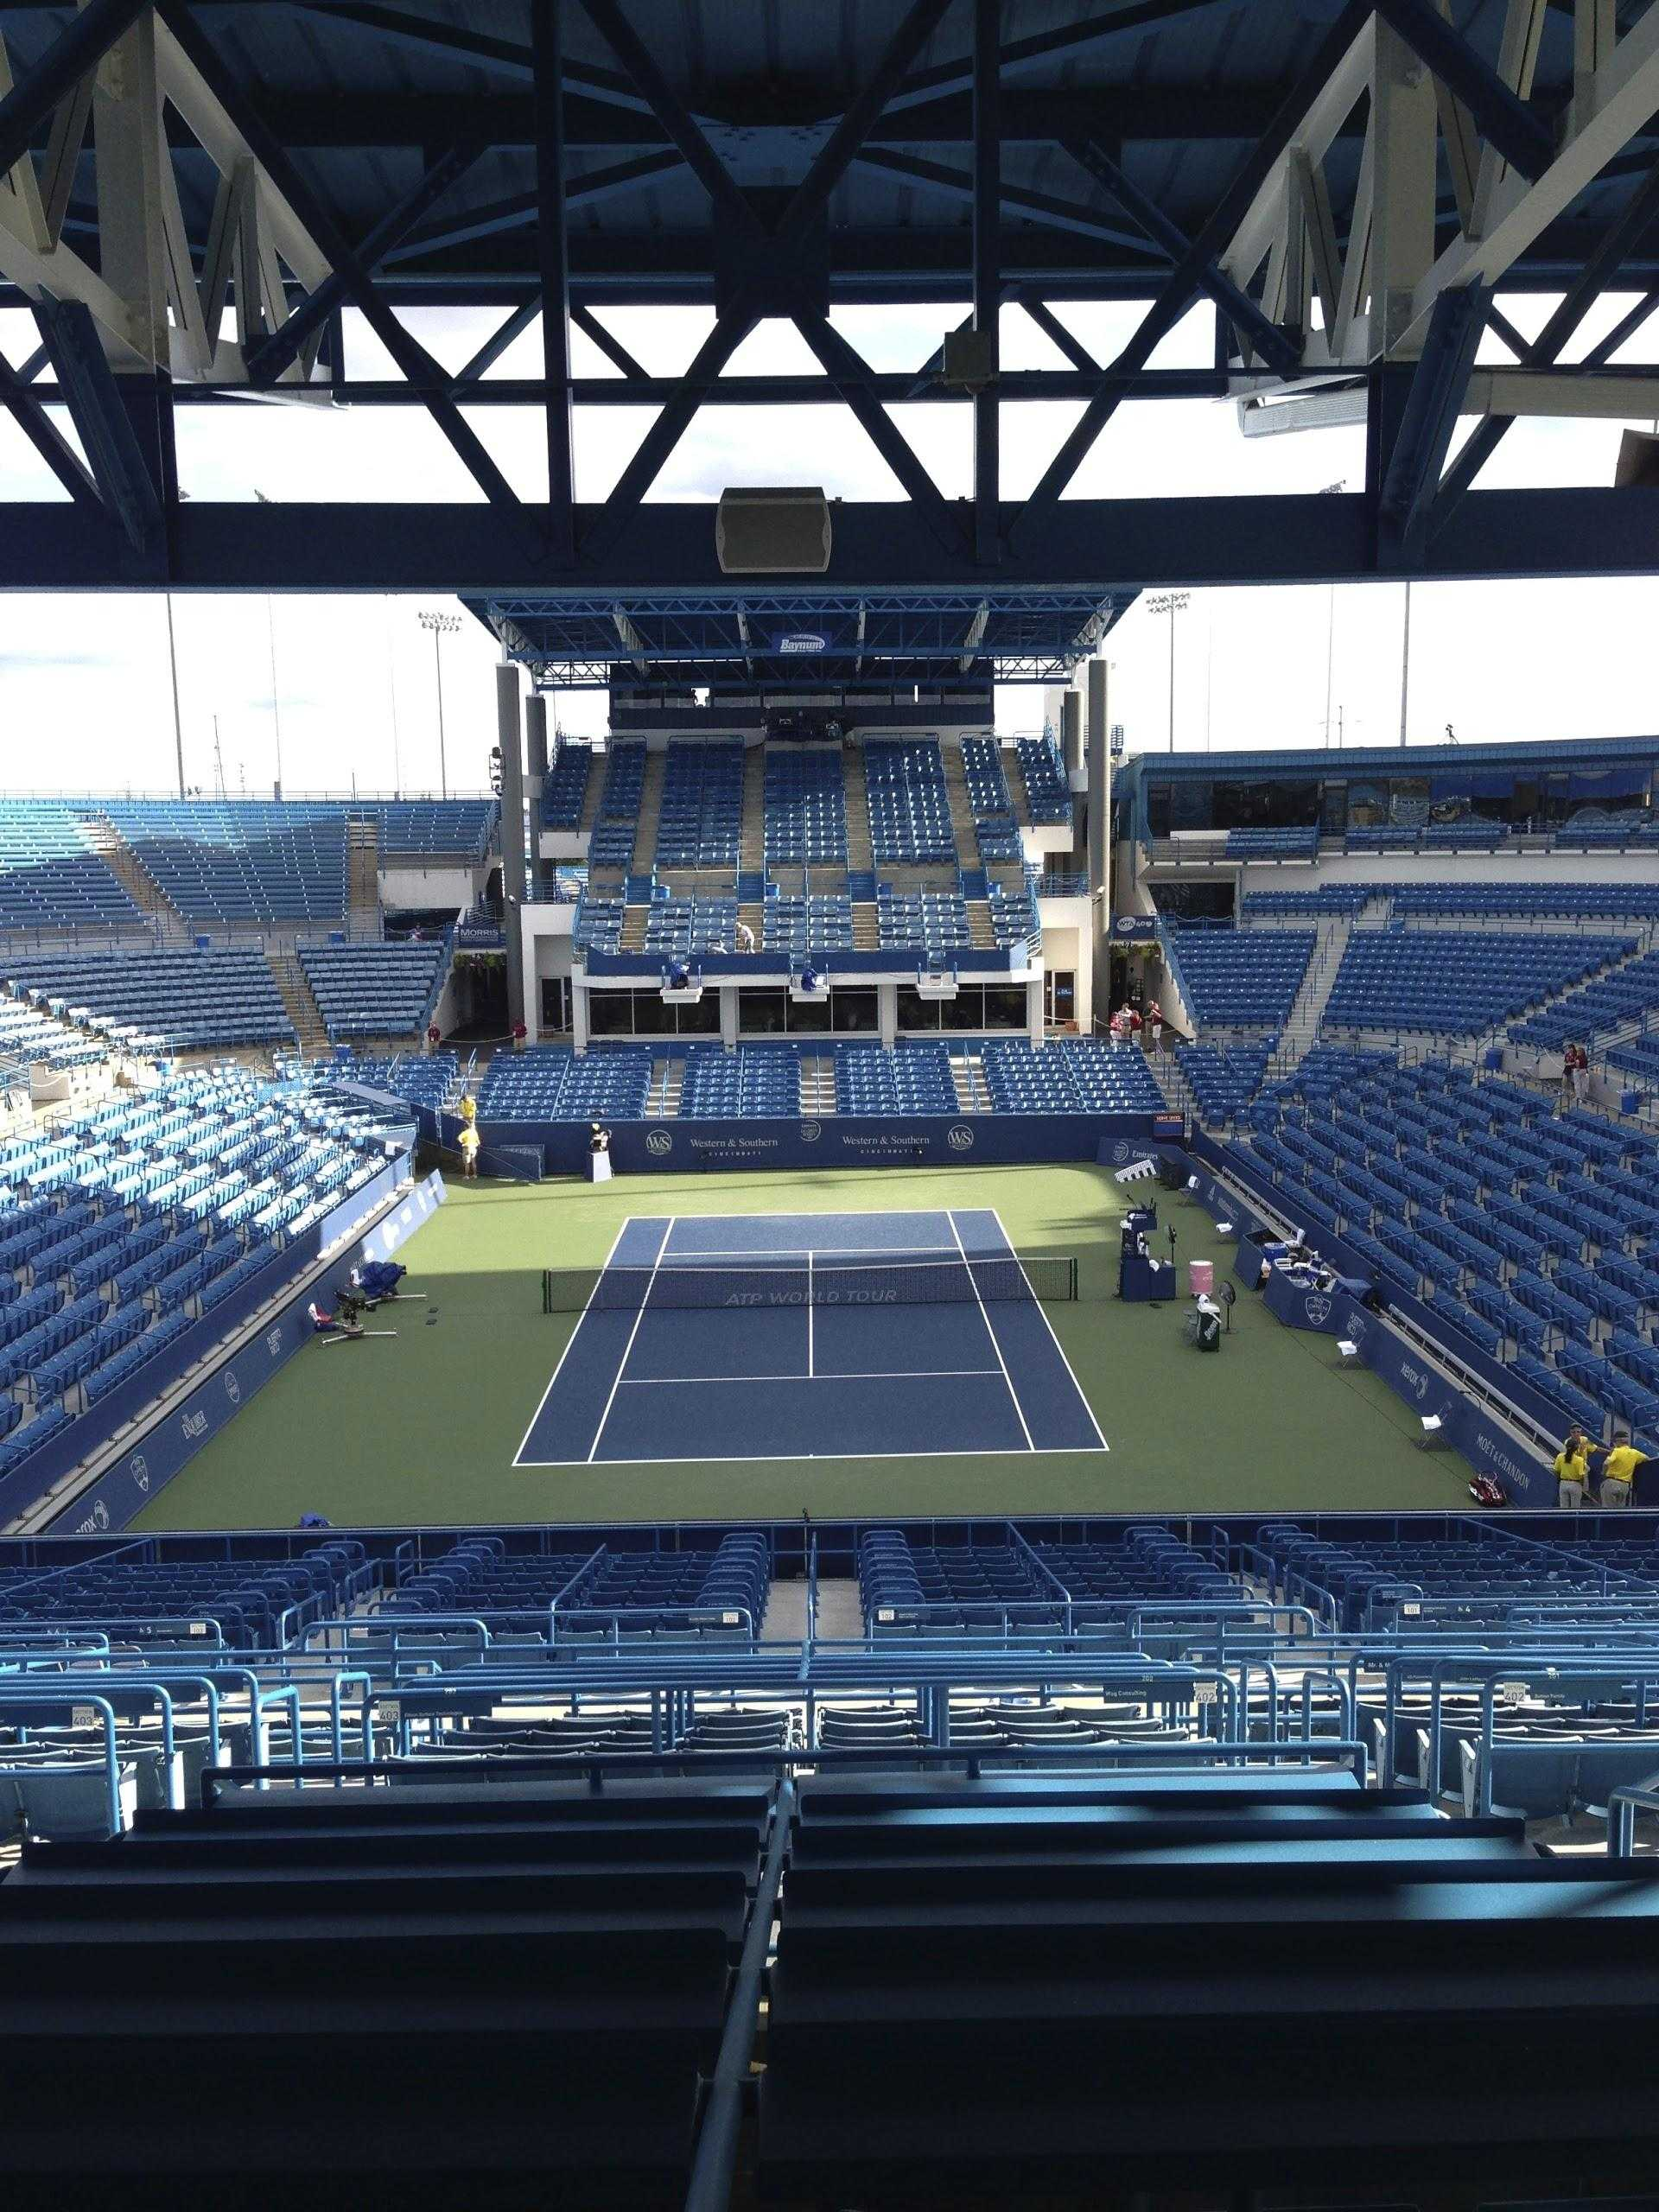 (IMAGE BY JACK LOON) This is center court at the Lidner family tennis center. Here is where the biggest matches of the tournament take place, and where the best of the best play. This year, tryouts will be held here, and many of the tennis players will get to play on this famous court.